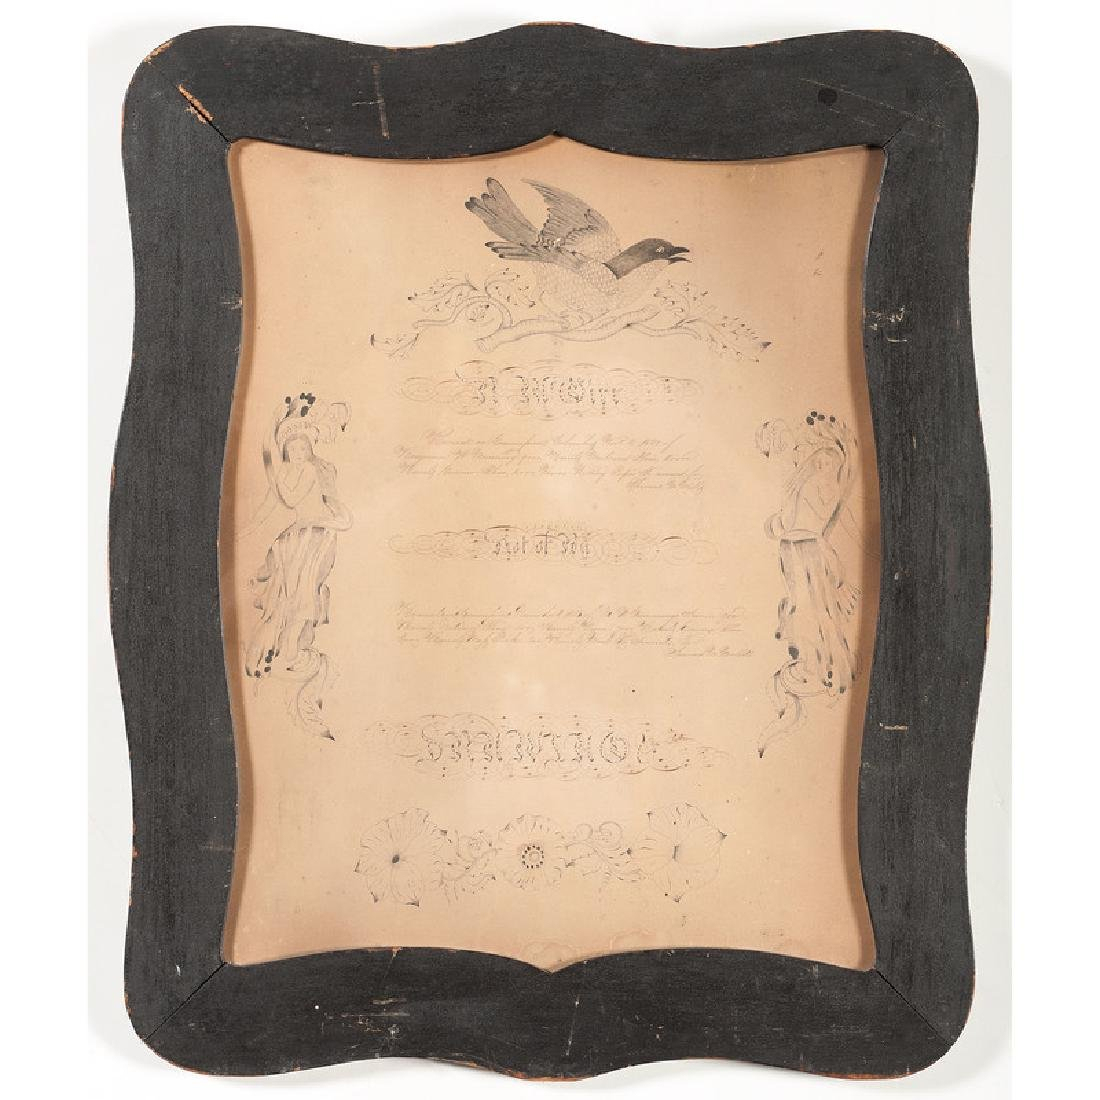 Framed Document with Ink Embellishments